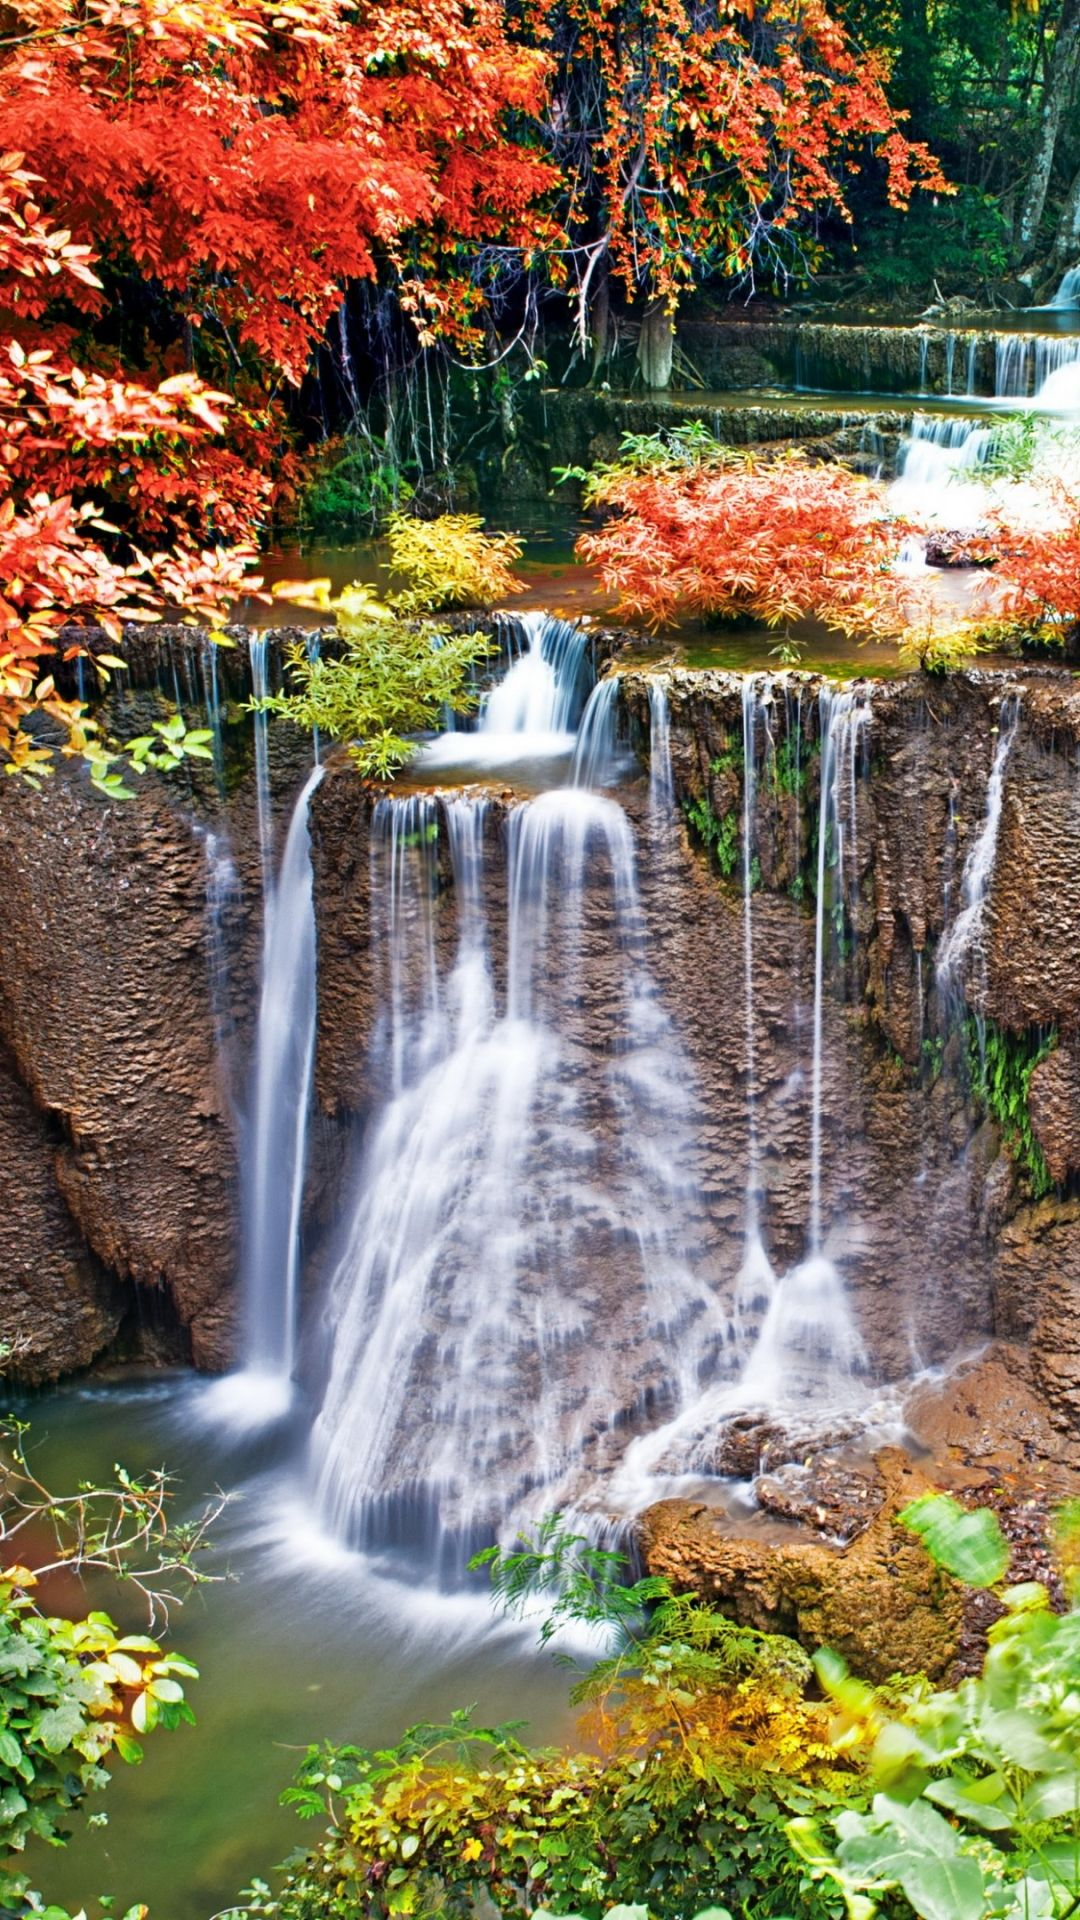 Smartphone Hd Wallpaper 46133747 Funprix Waterfall Wallpaper Scenery Wallpaper Nature Iphone Wallpaper